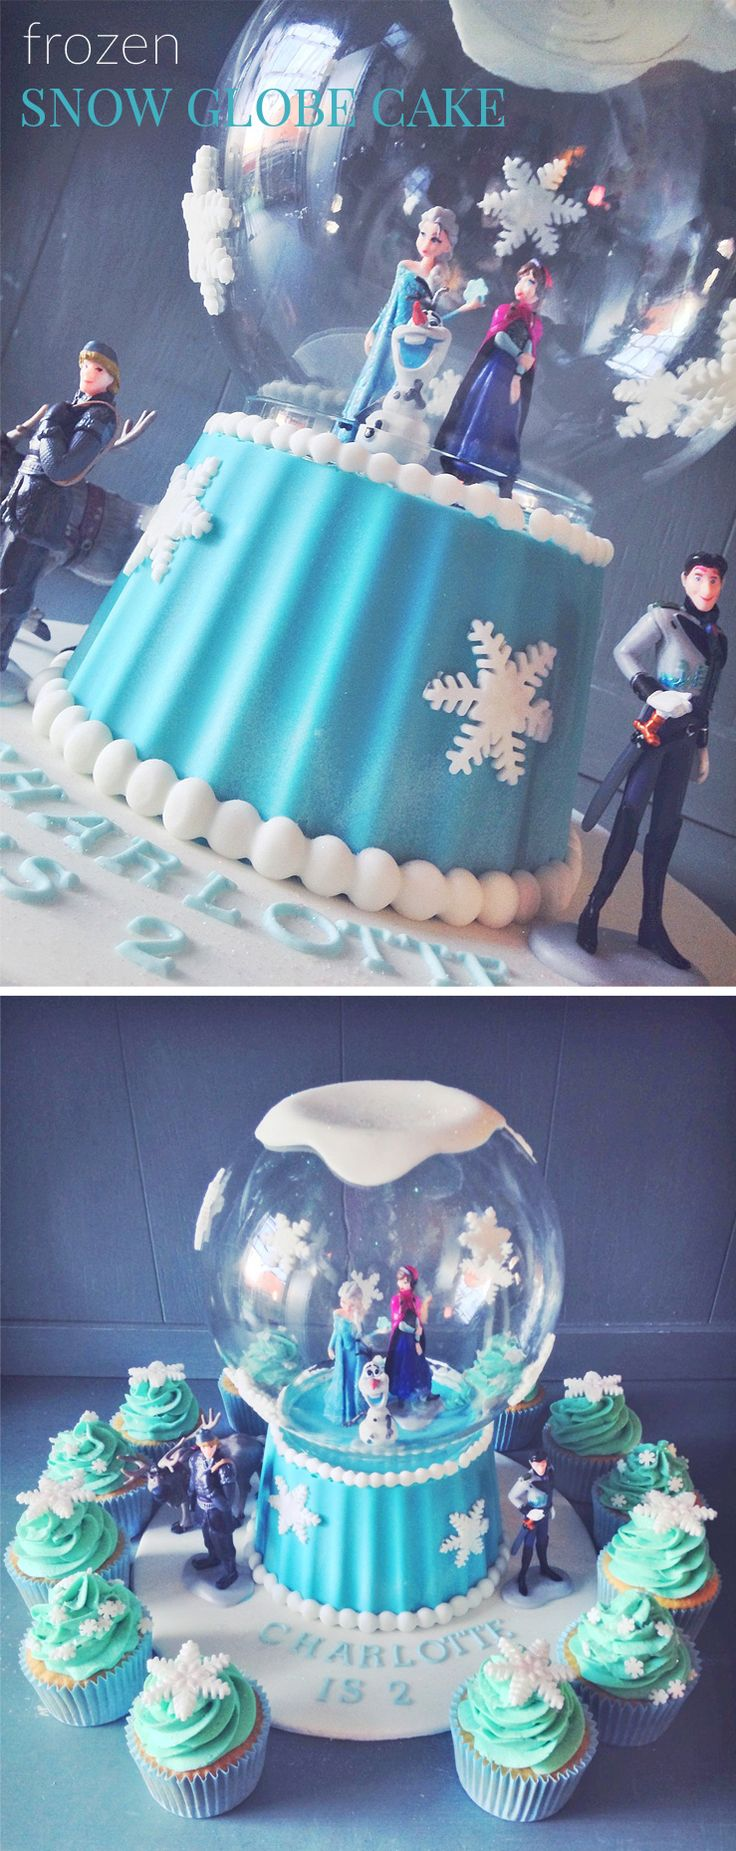 My Cakes | Hints & Tips to create a Frozen Snow Globe Cake - Gym Bunny Mummy @gymbunnymum